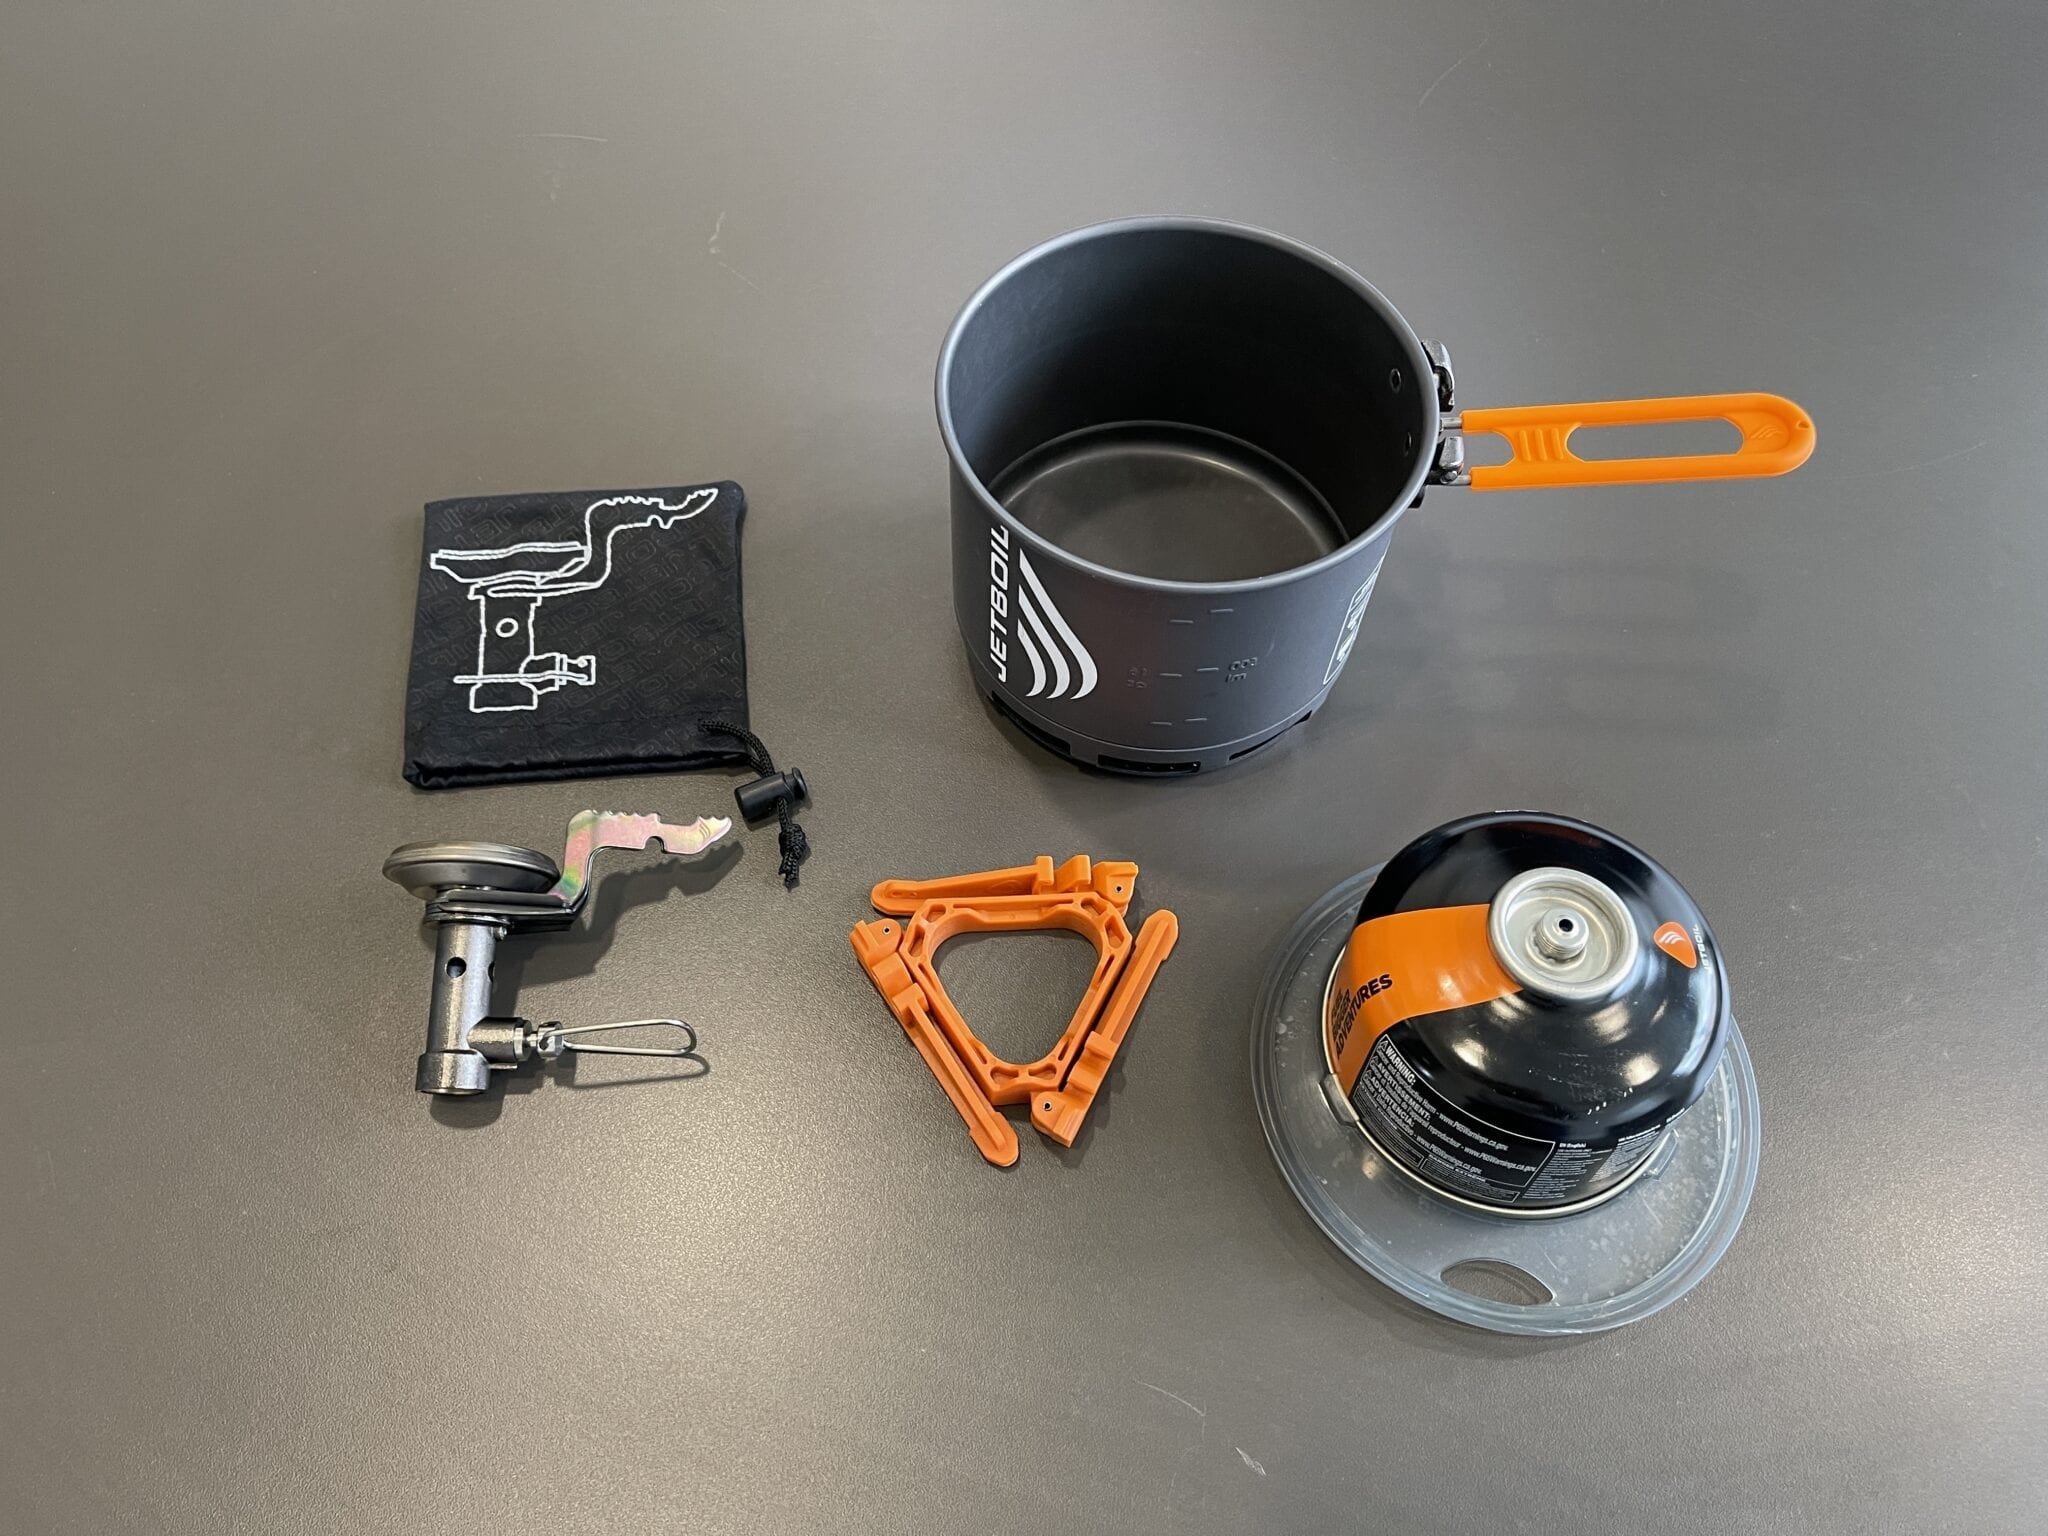 The Jetboil Stash stove system disassembled and laid out on a table.